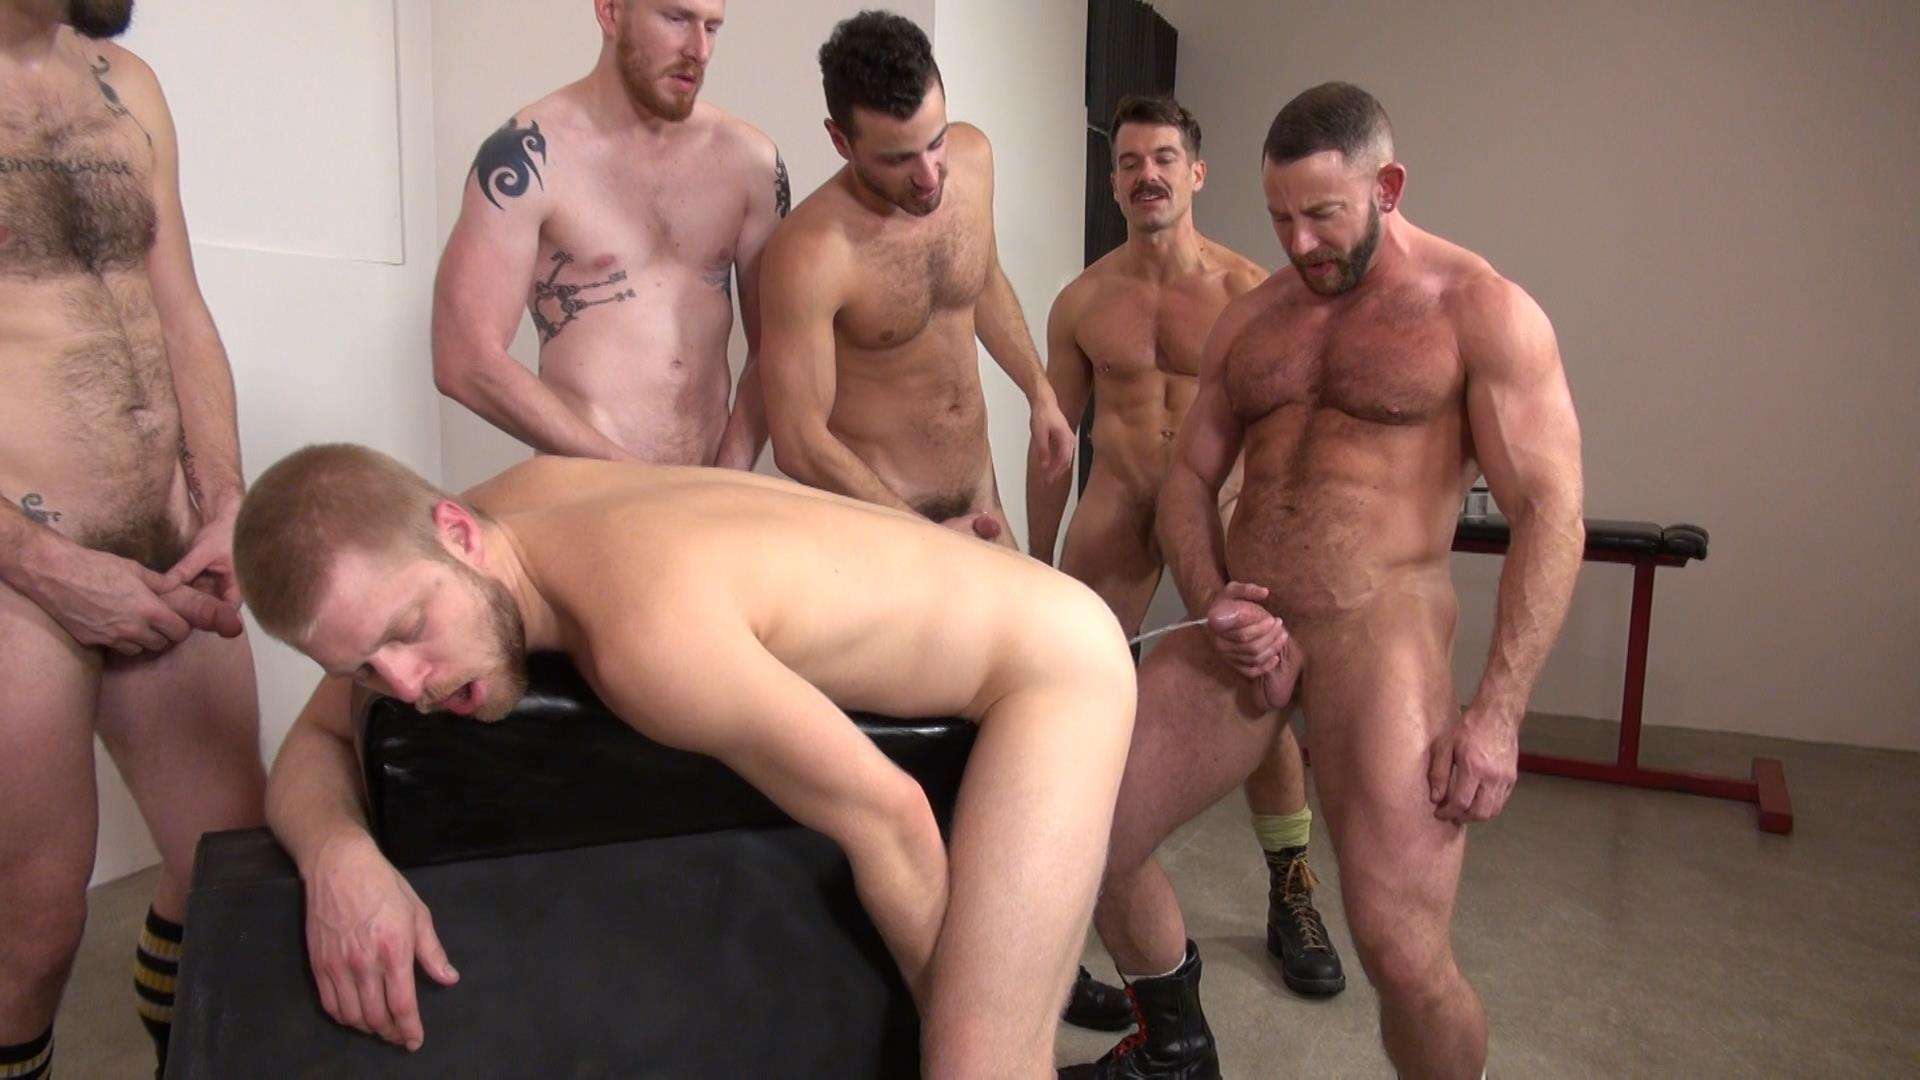 Raw-and-Rough-Bareback-Gay-Sex-Orgy-Amateur-Gay-Porn-03 Six Hairy Hung Guys Pounding A Bottom At A Bareback Sex Party